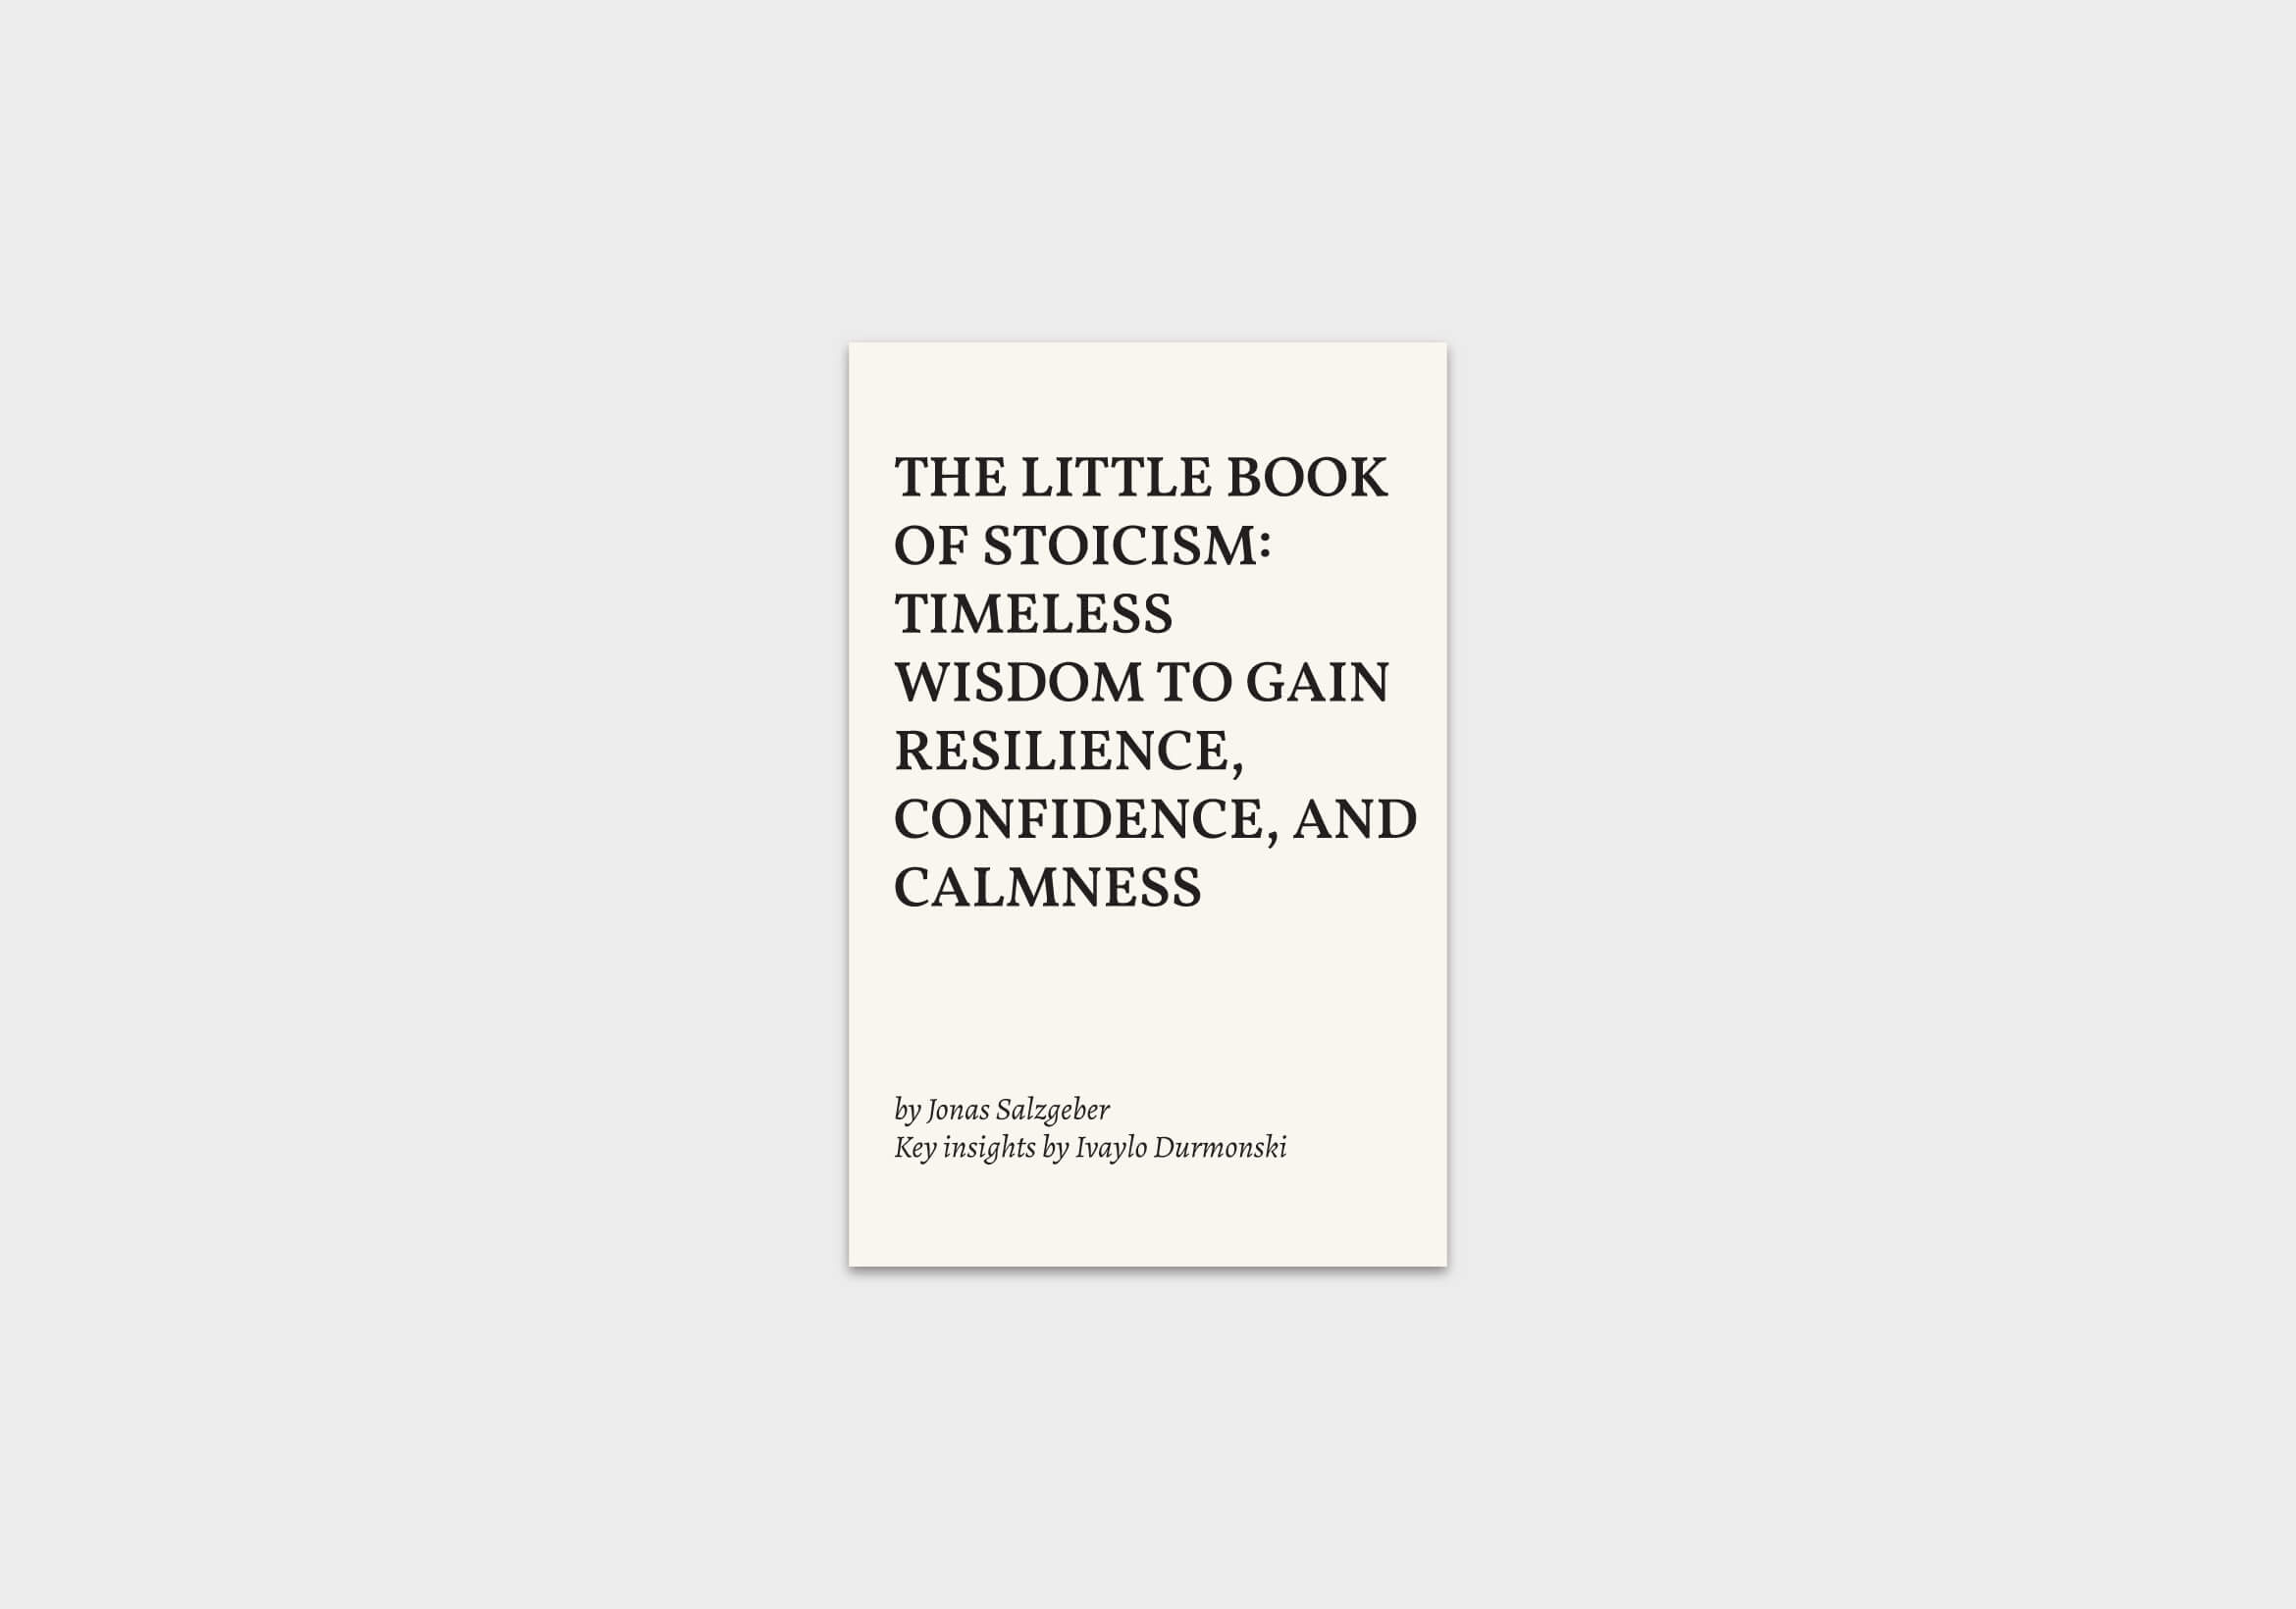 The-Little-Book-of-Stoicism-summary